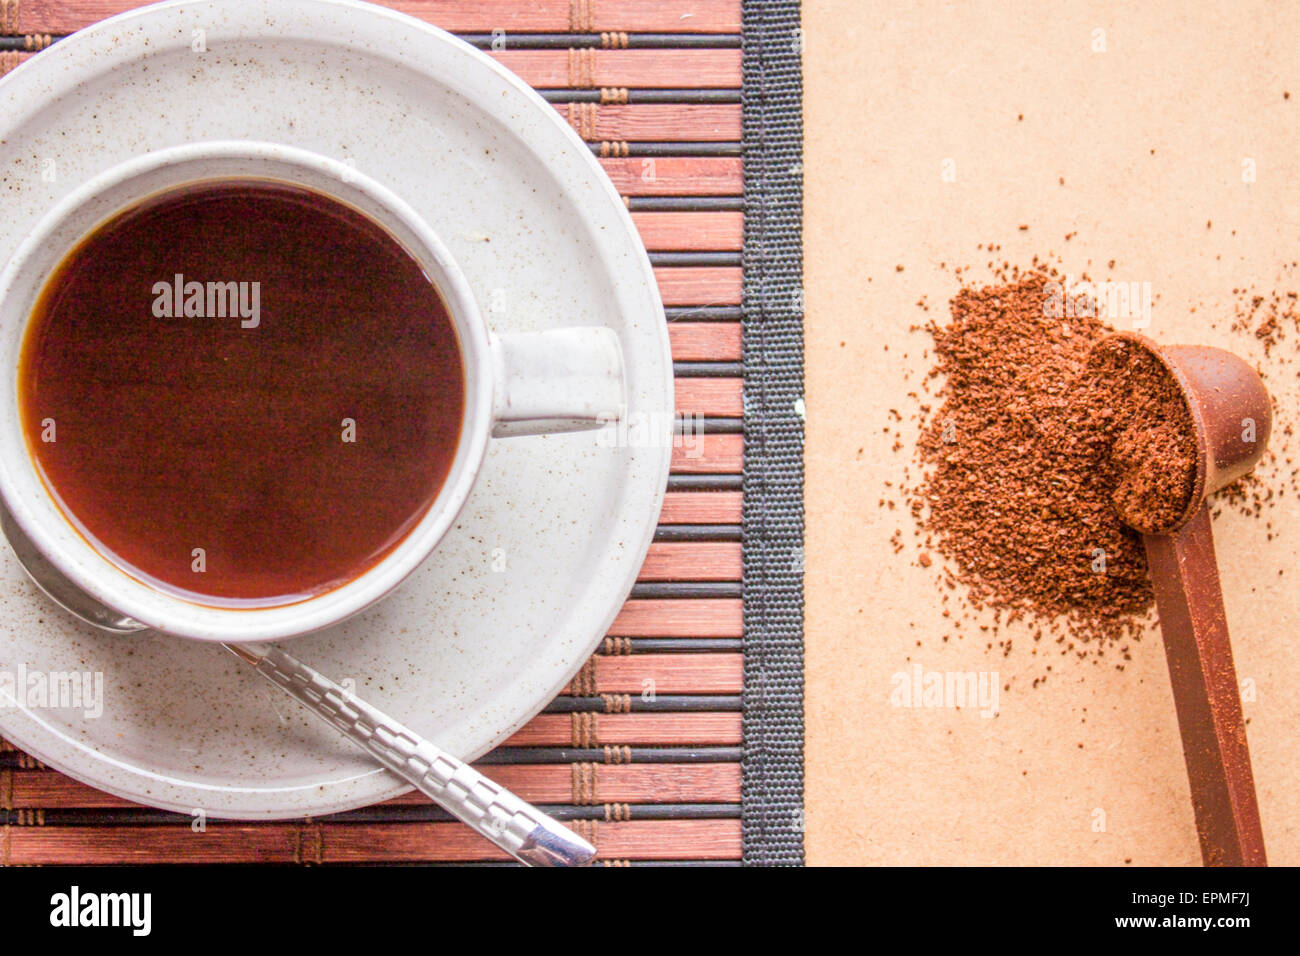 Flavourful dark coffee and minced coffe beans - Stock Image